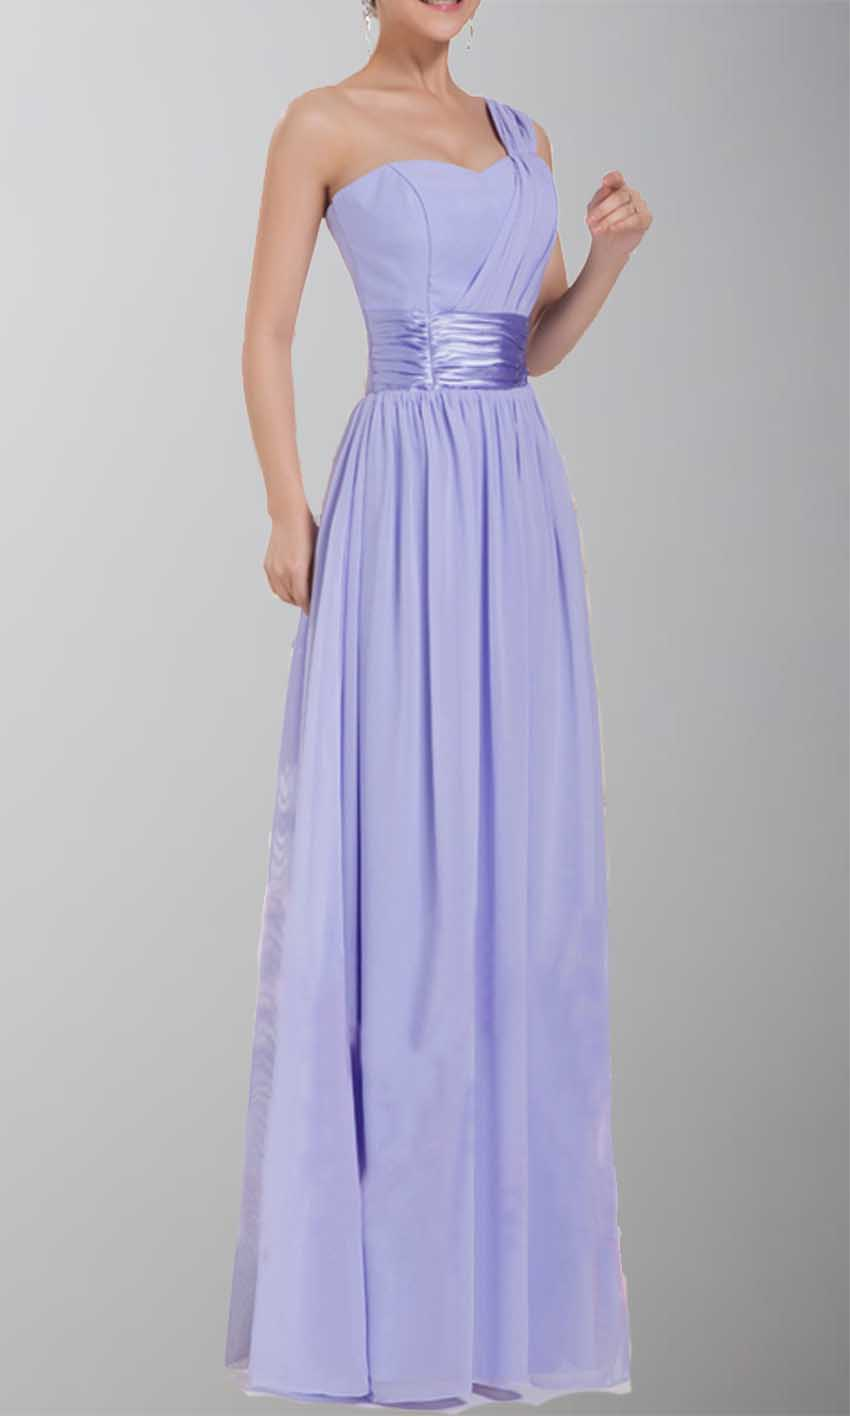 Allure One Shoulder Prom Dresses Under 100 KSP072 [KSP072] - £84.00 ...